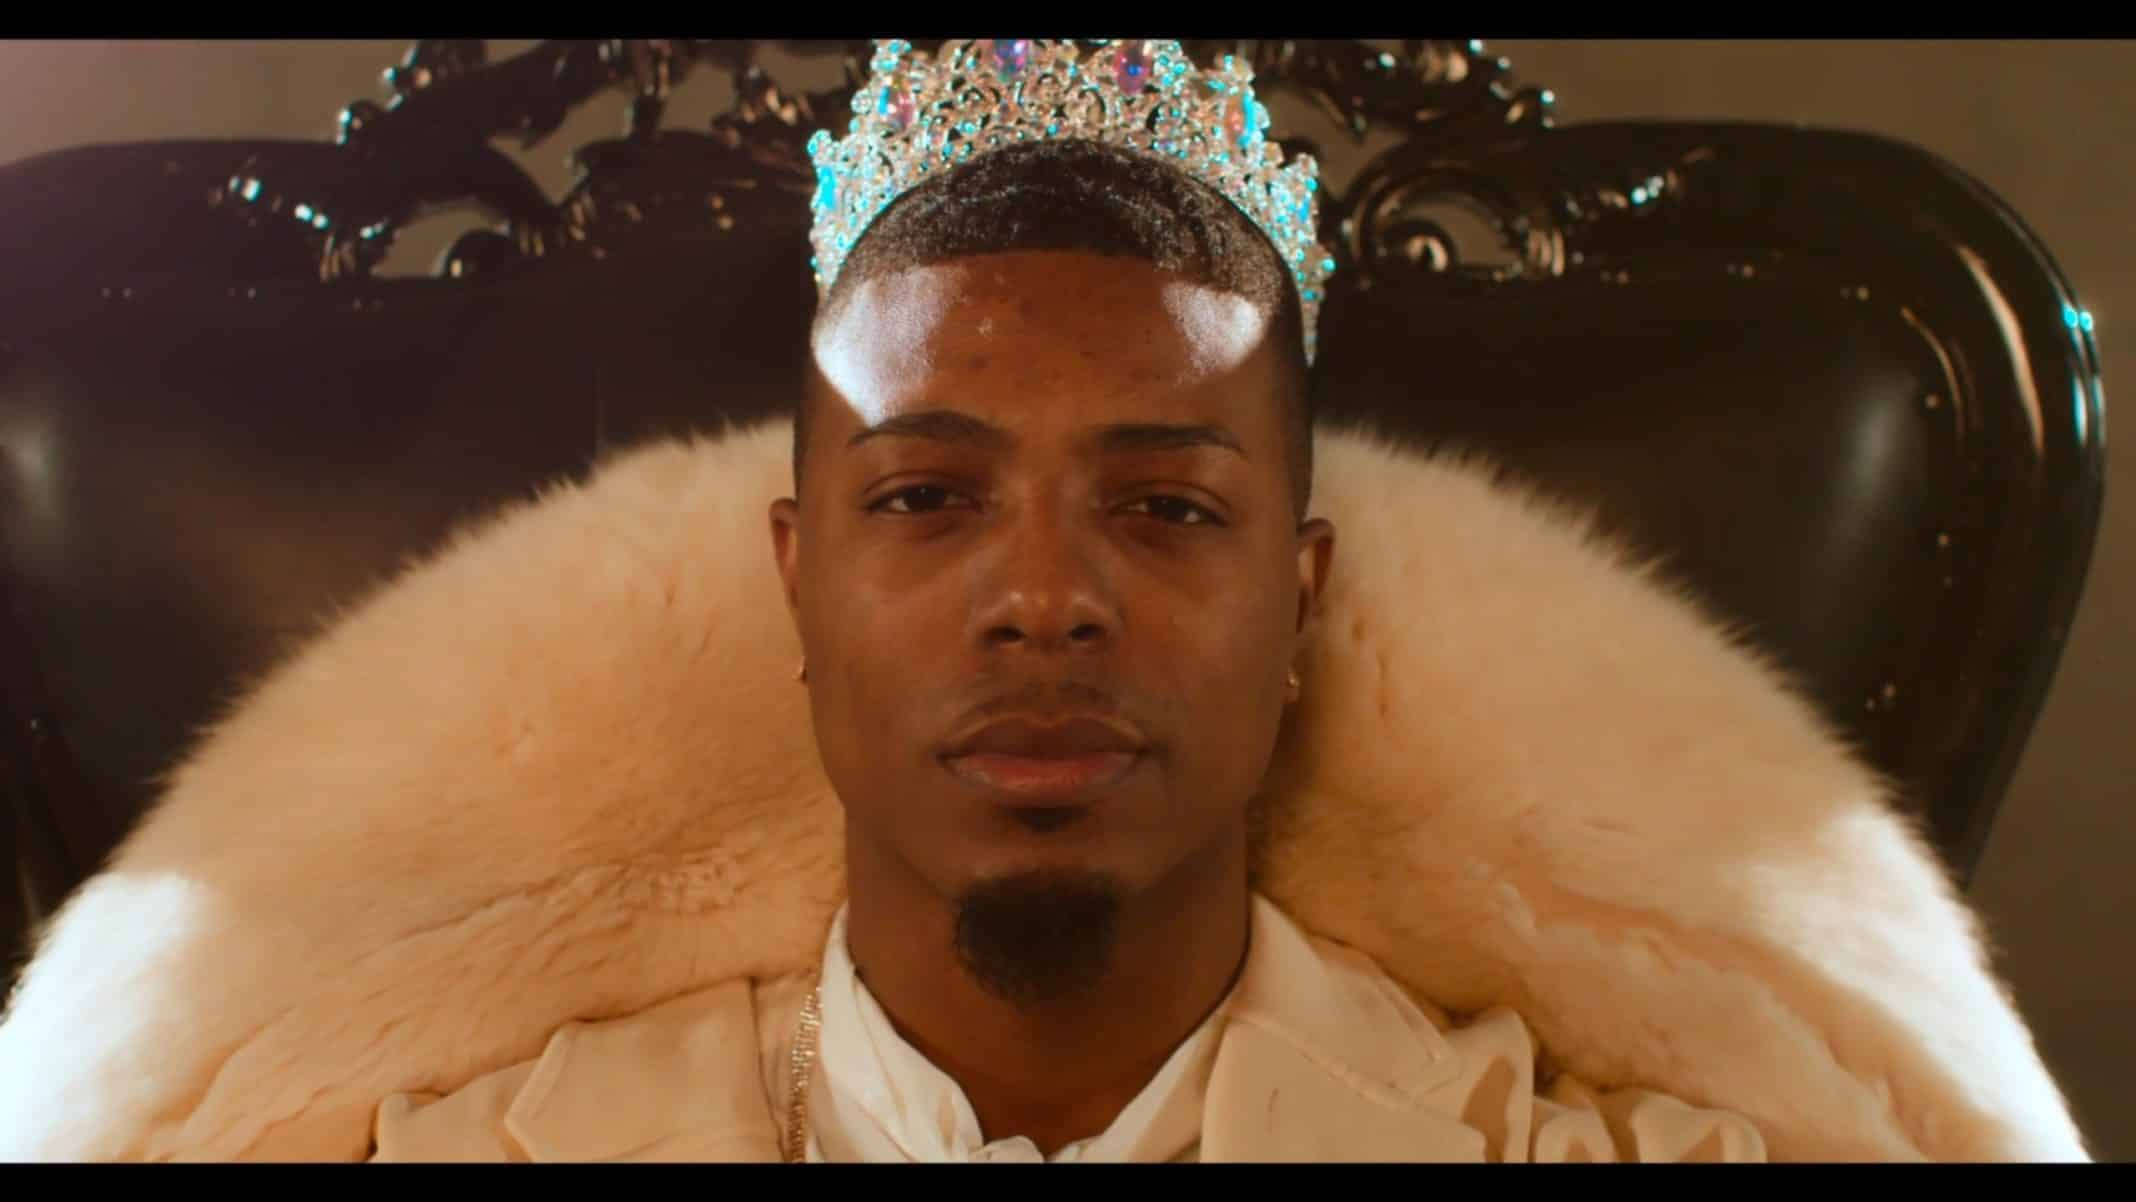 London wearing a crown during a promo shoot.